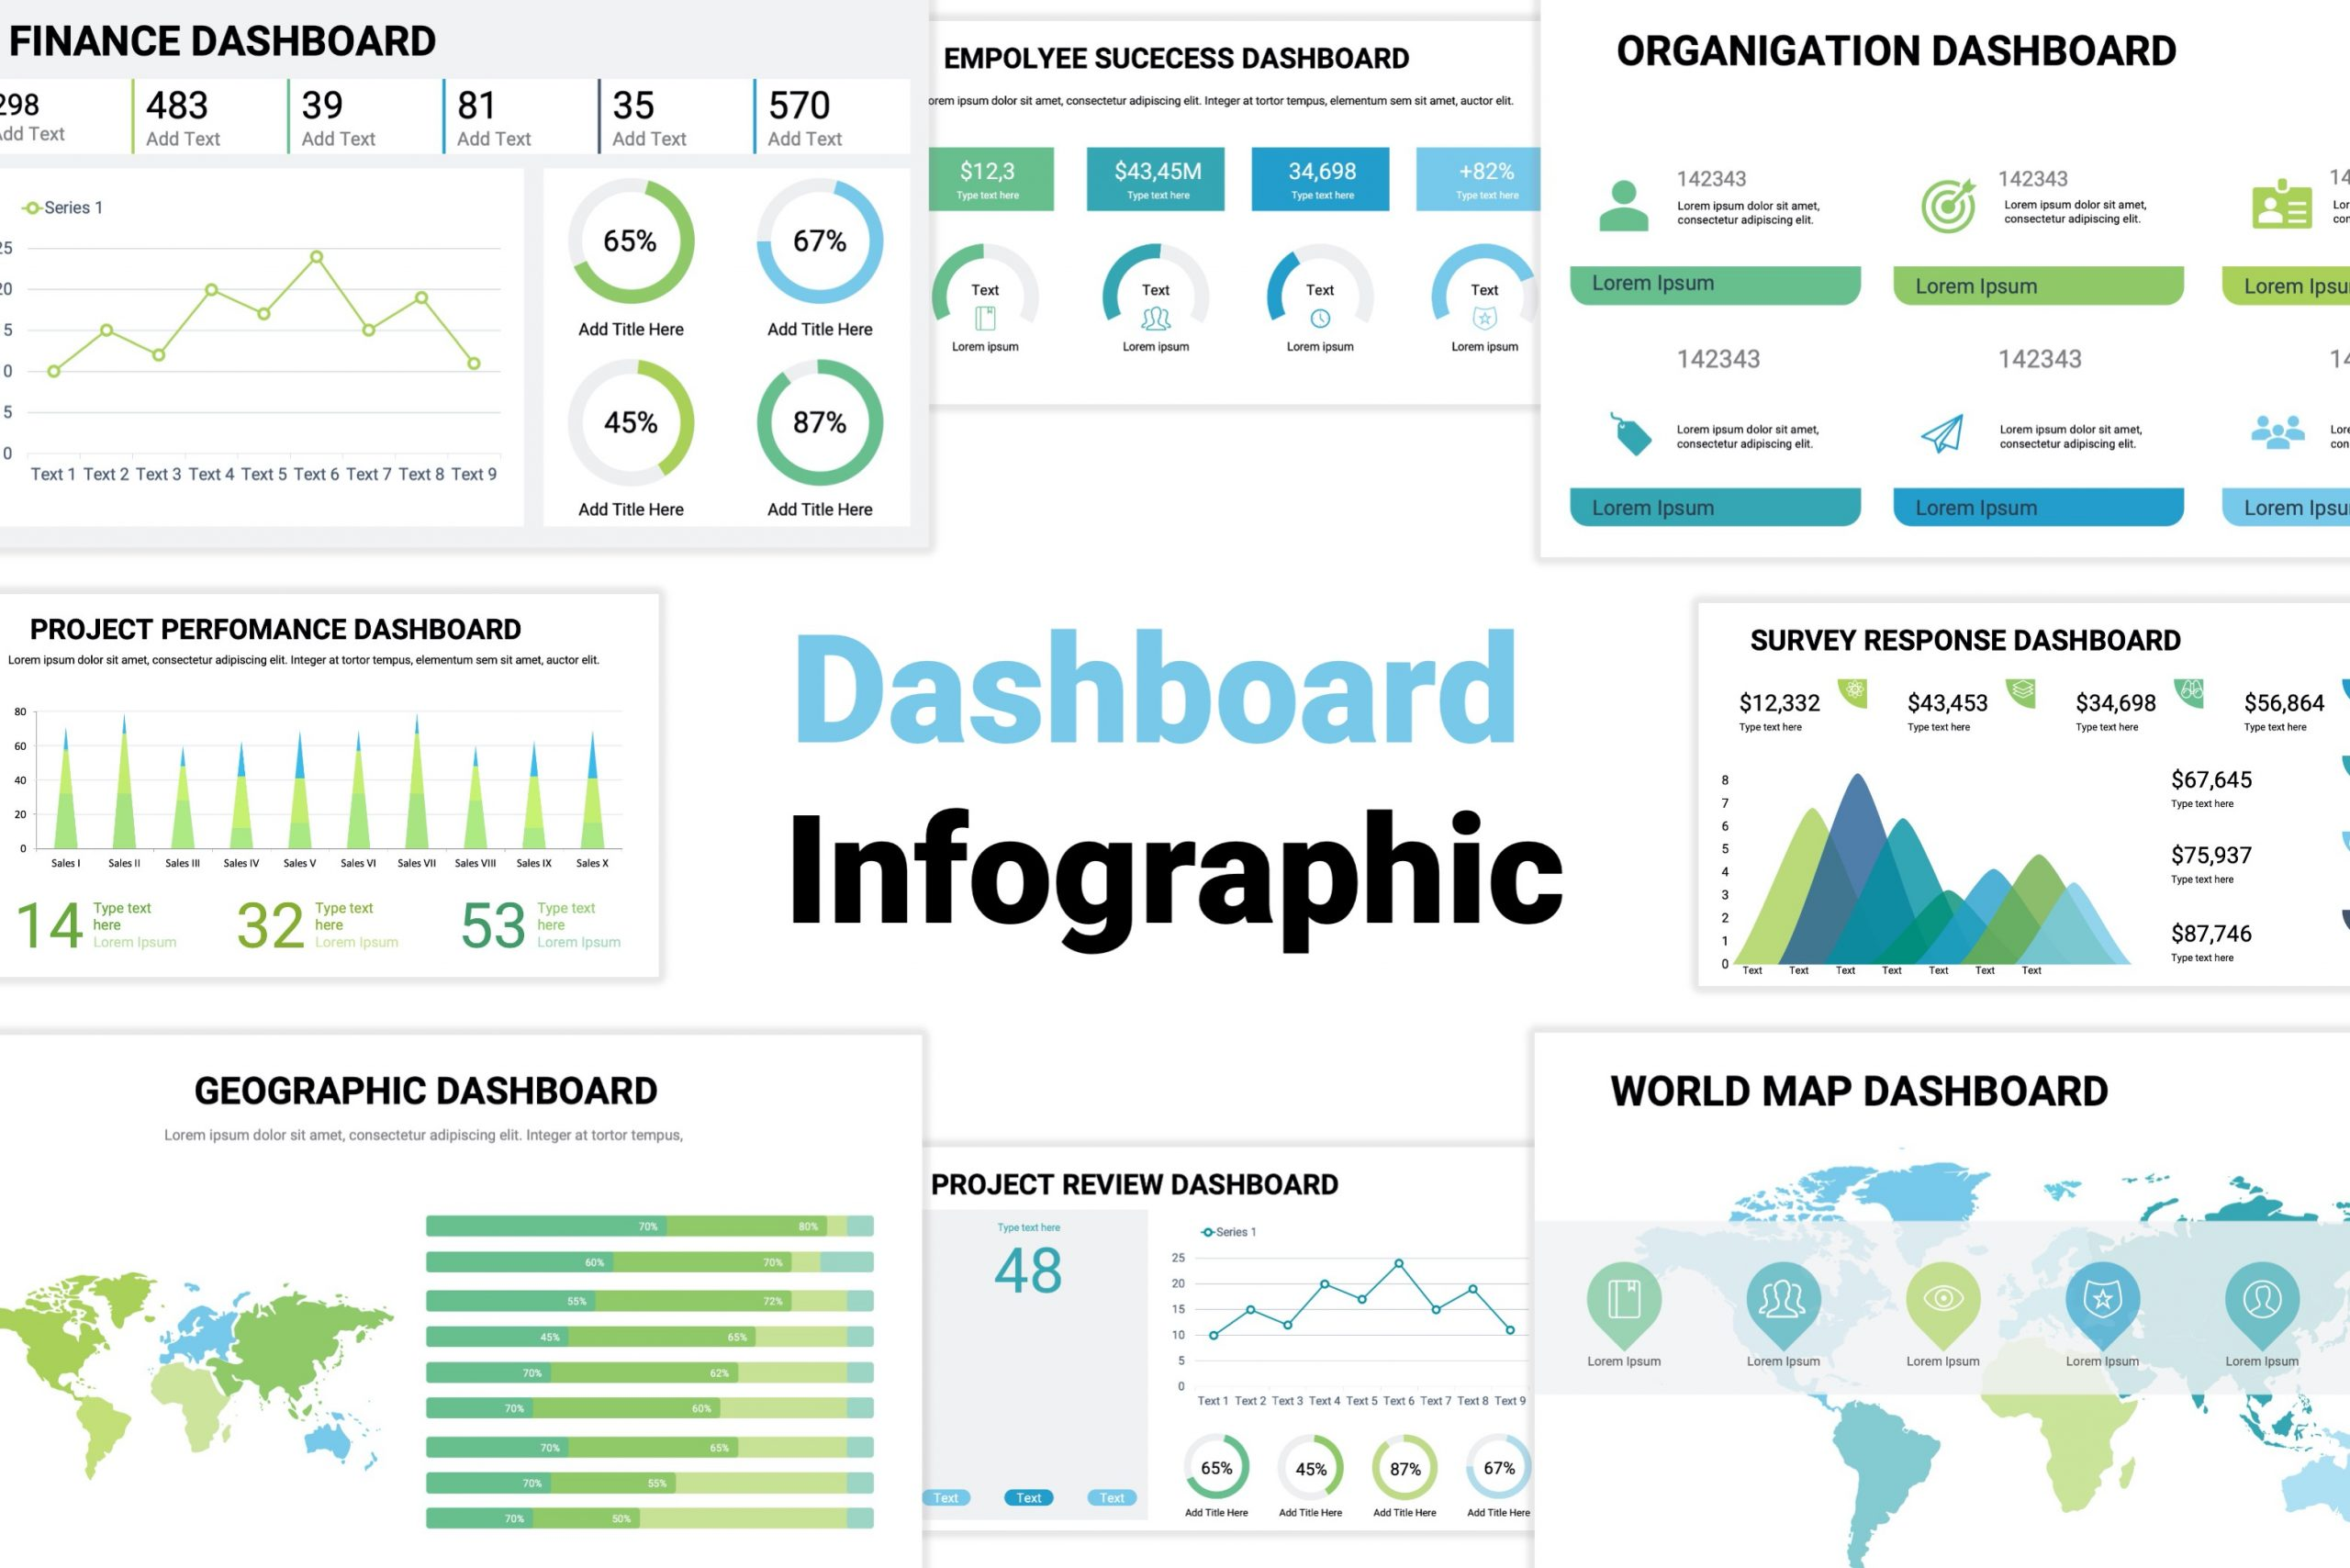 Download Dashboard Infographic